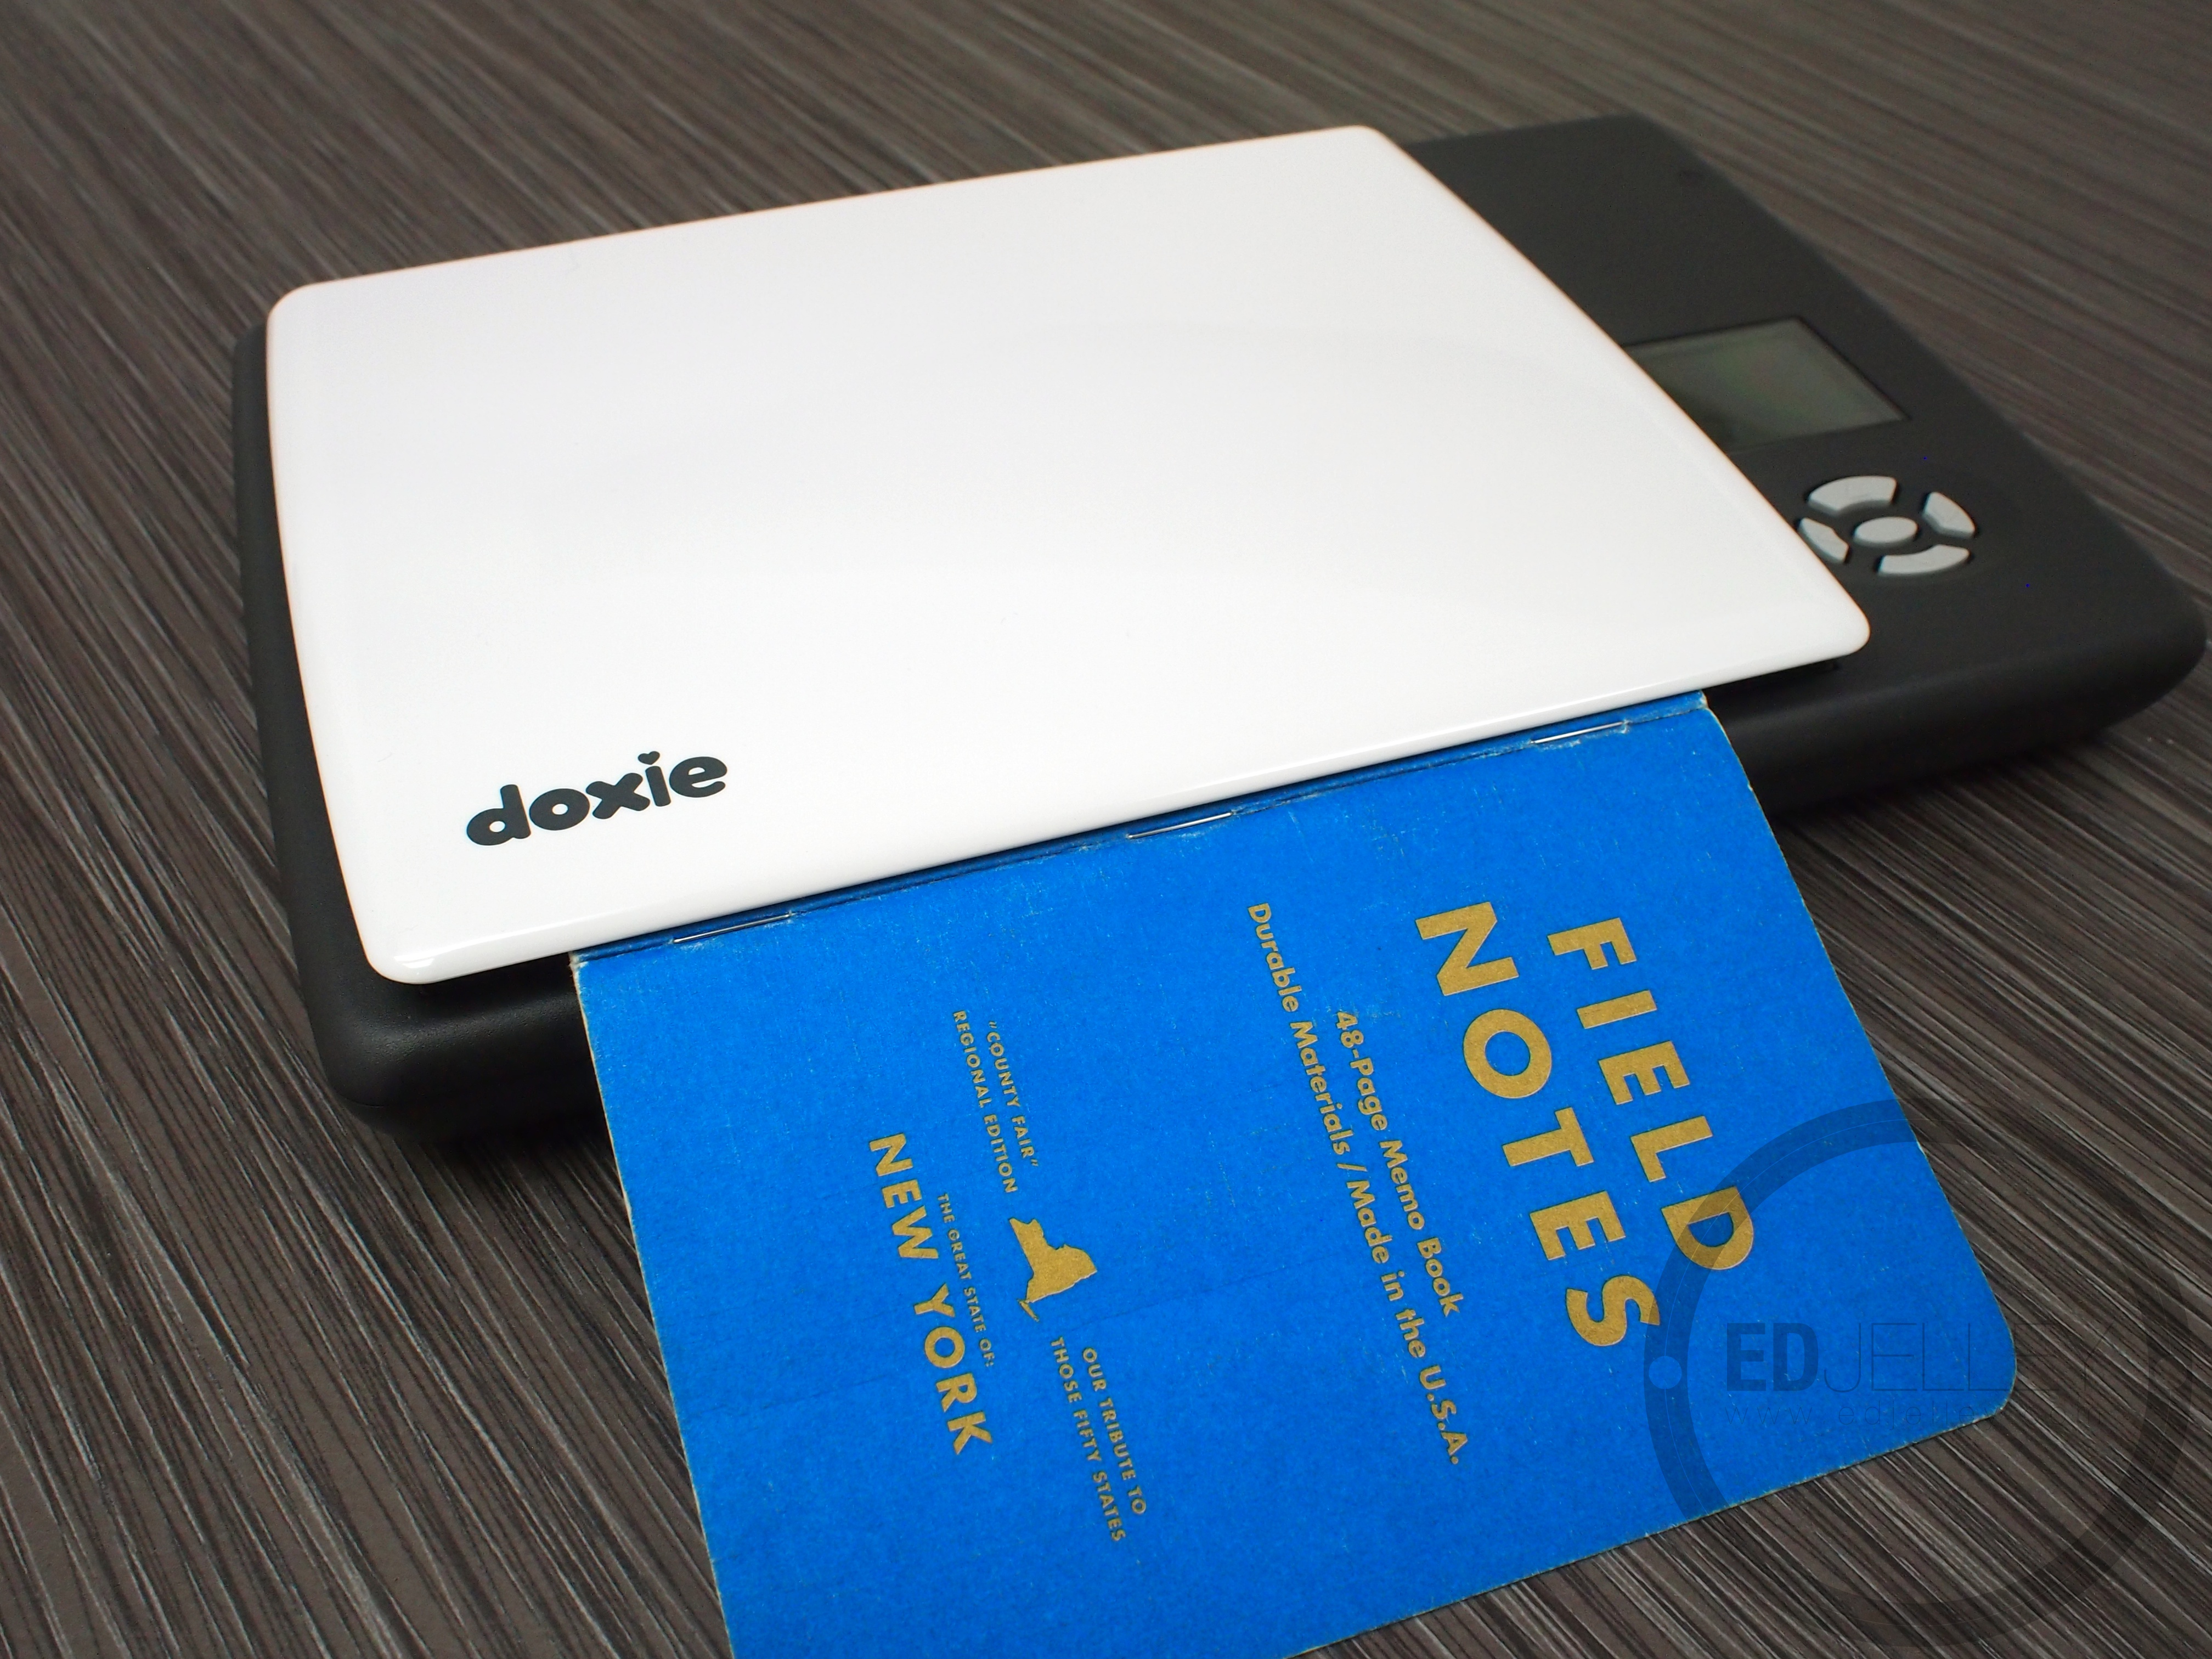 Doxie Flip Portable Flat Bed Scanner Review – edjelley.com ...